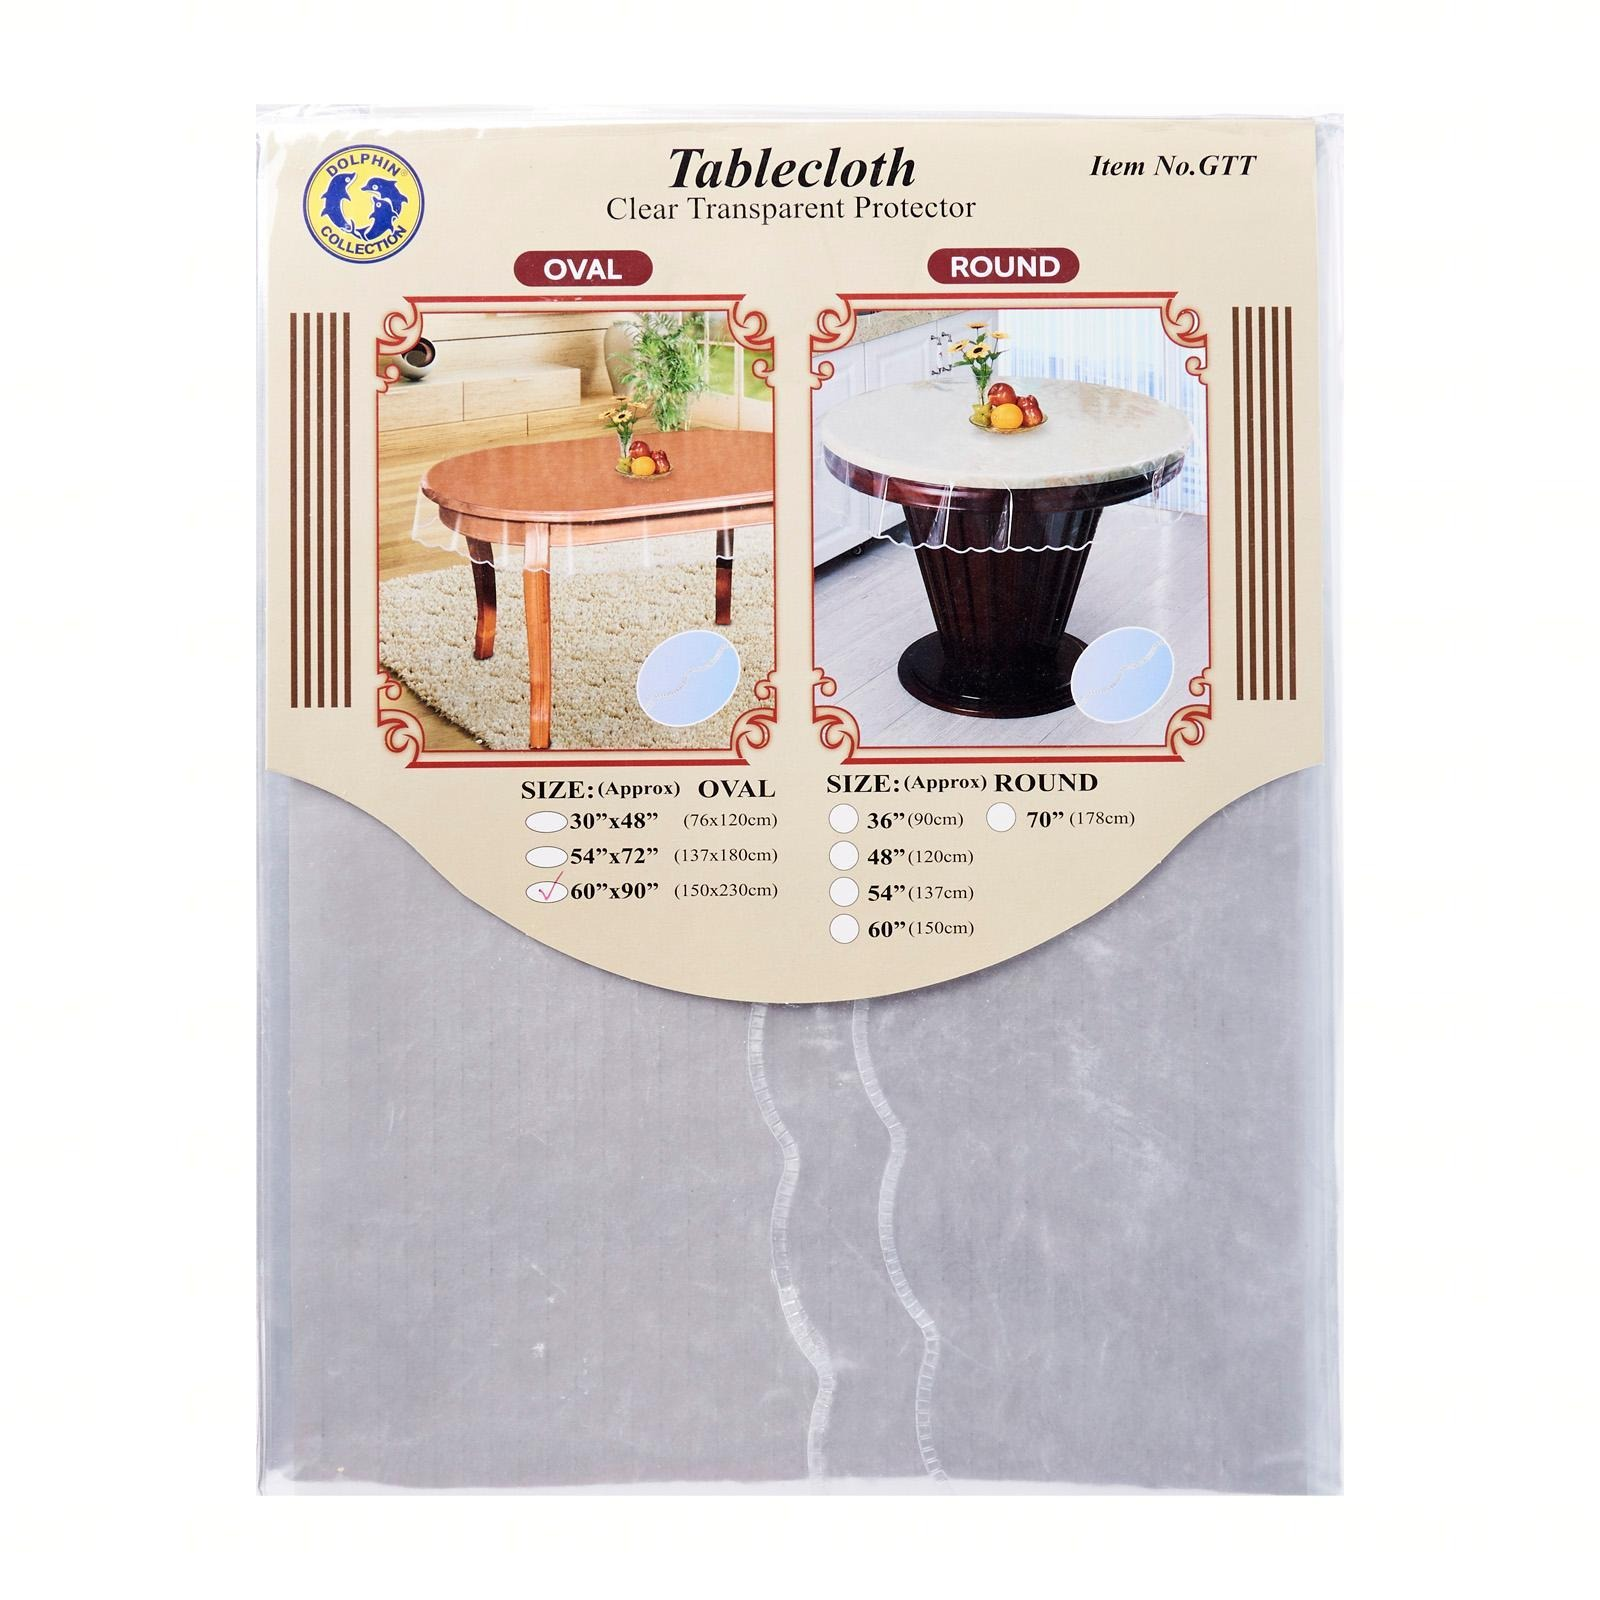 Dolphin Collection PVC Clear Transparent Tablecloth Oval